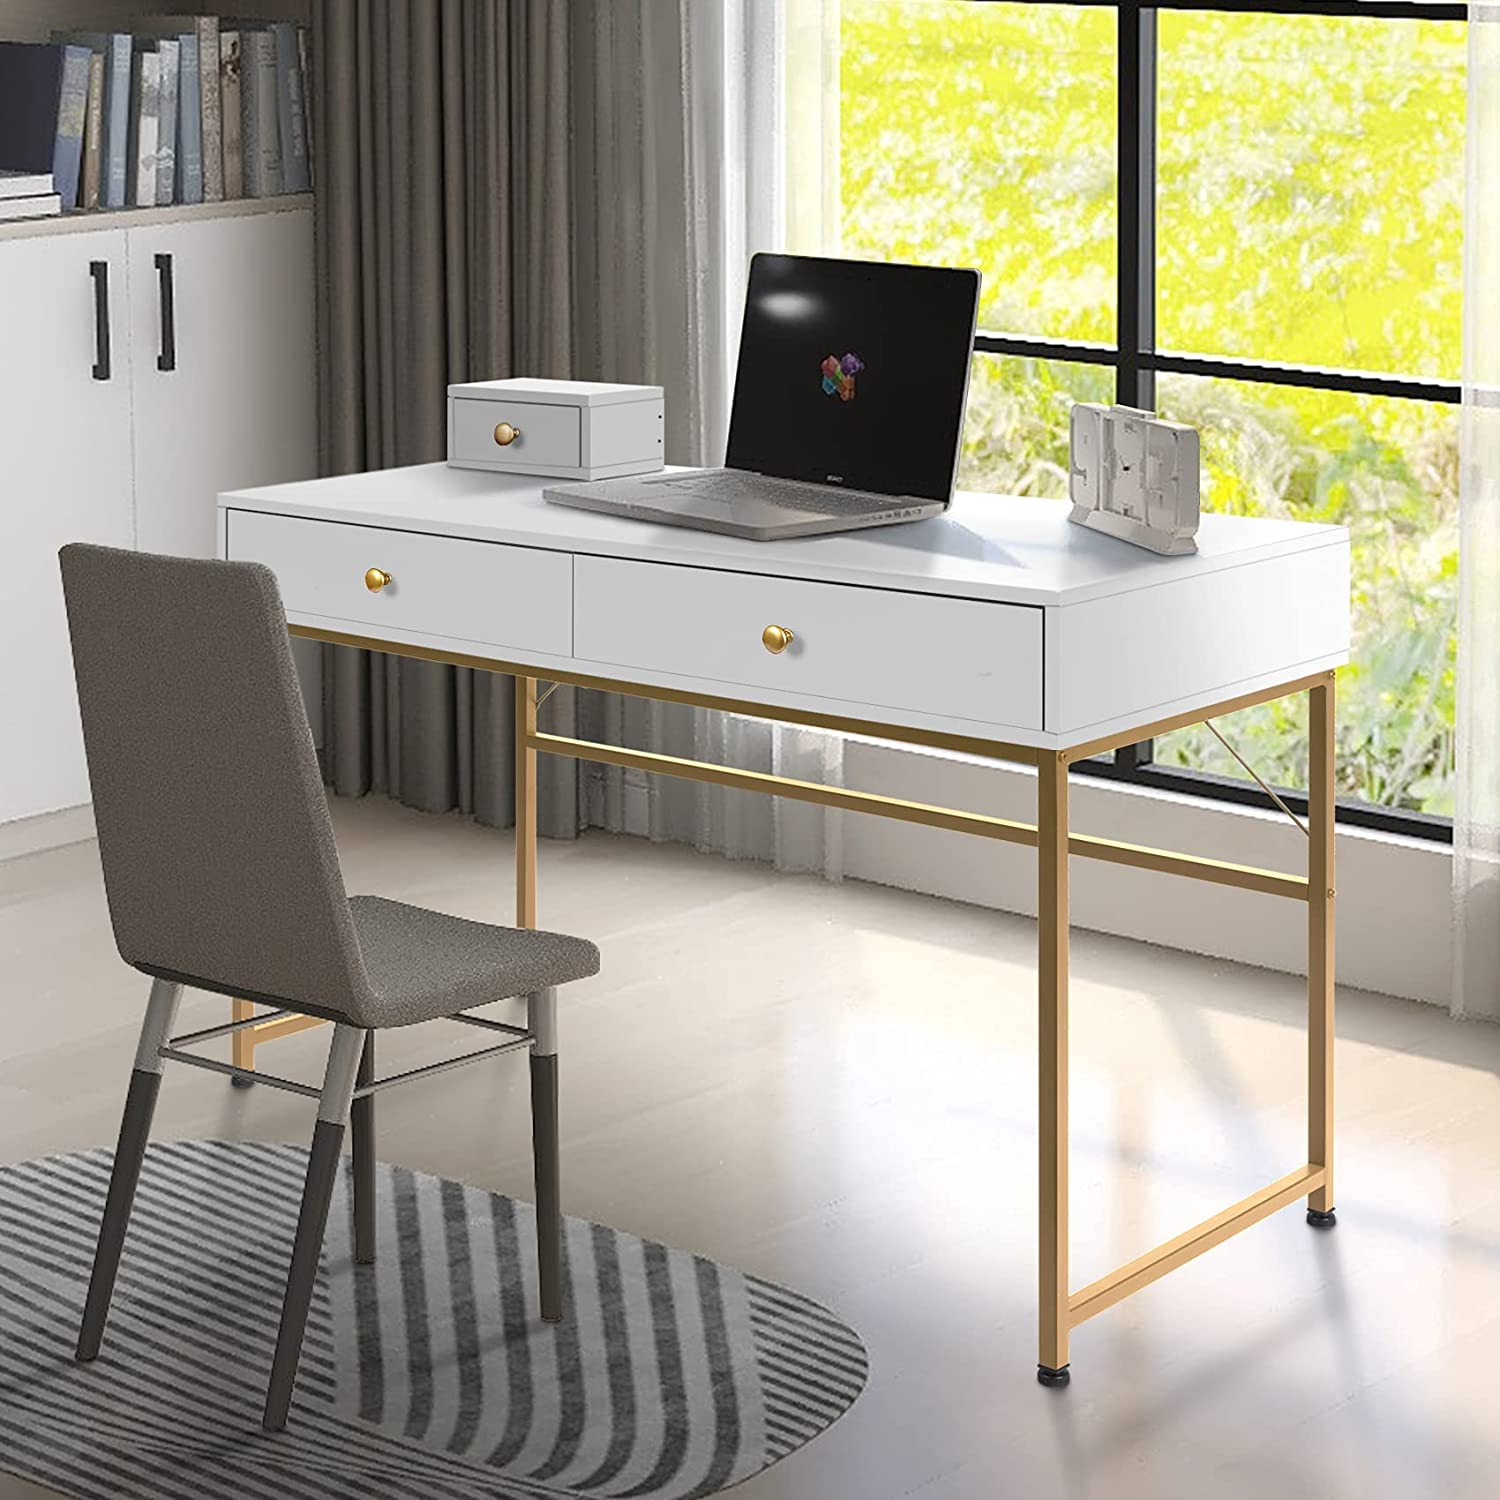 Simple Computer Desk with Drawers